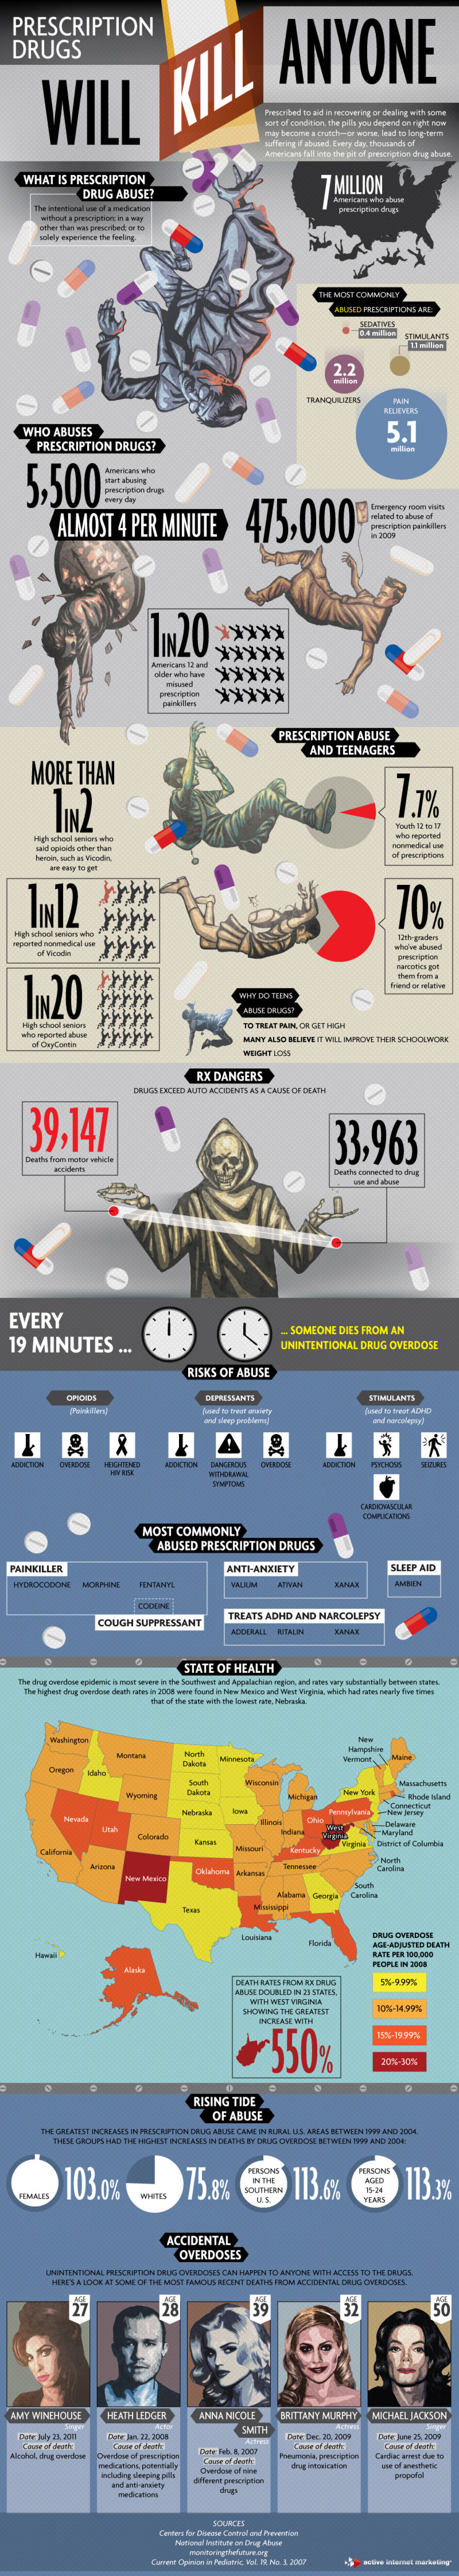 Prescription Drugs Can Kill Anyone Infographic